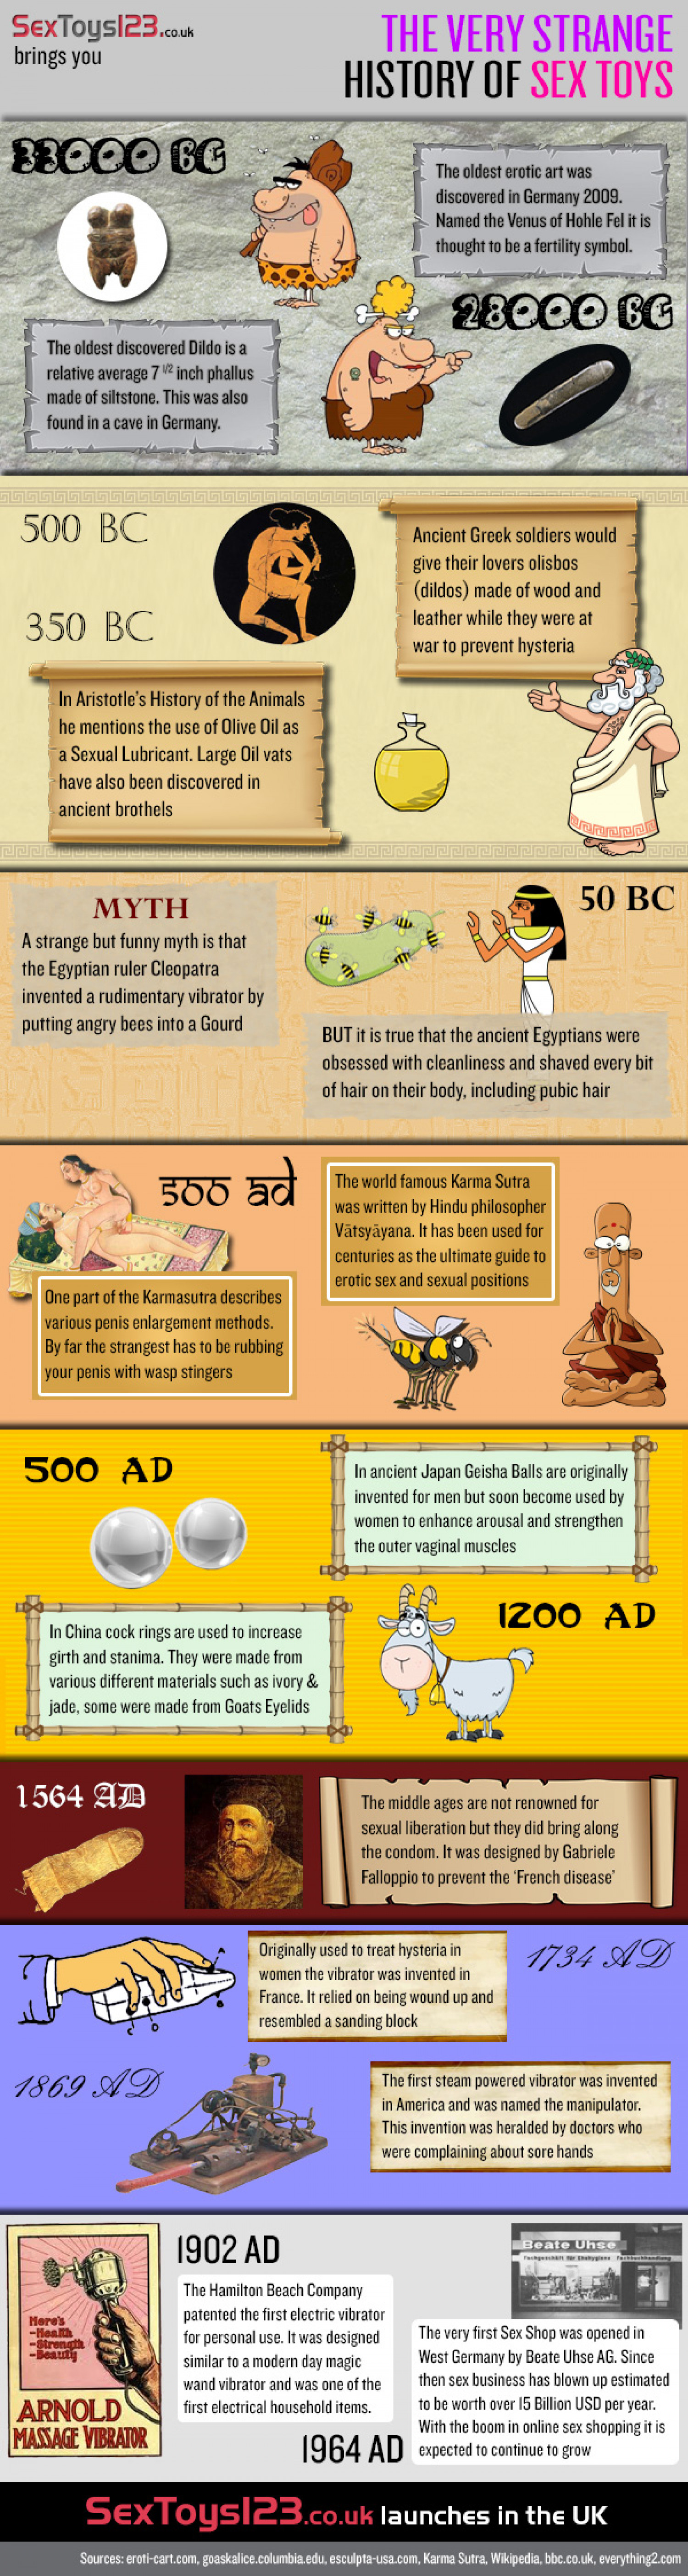 The Very Strange History of Sex Toys Infographic